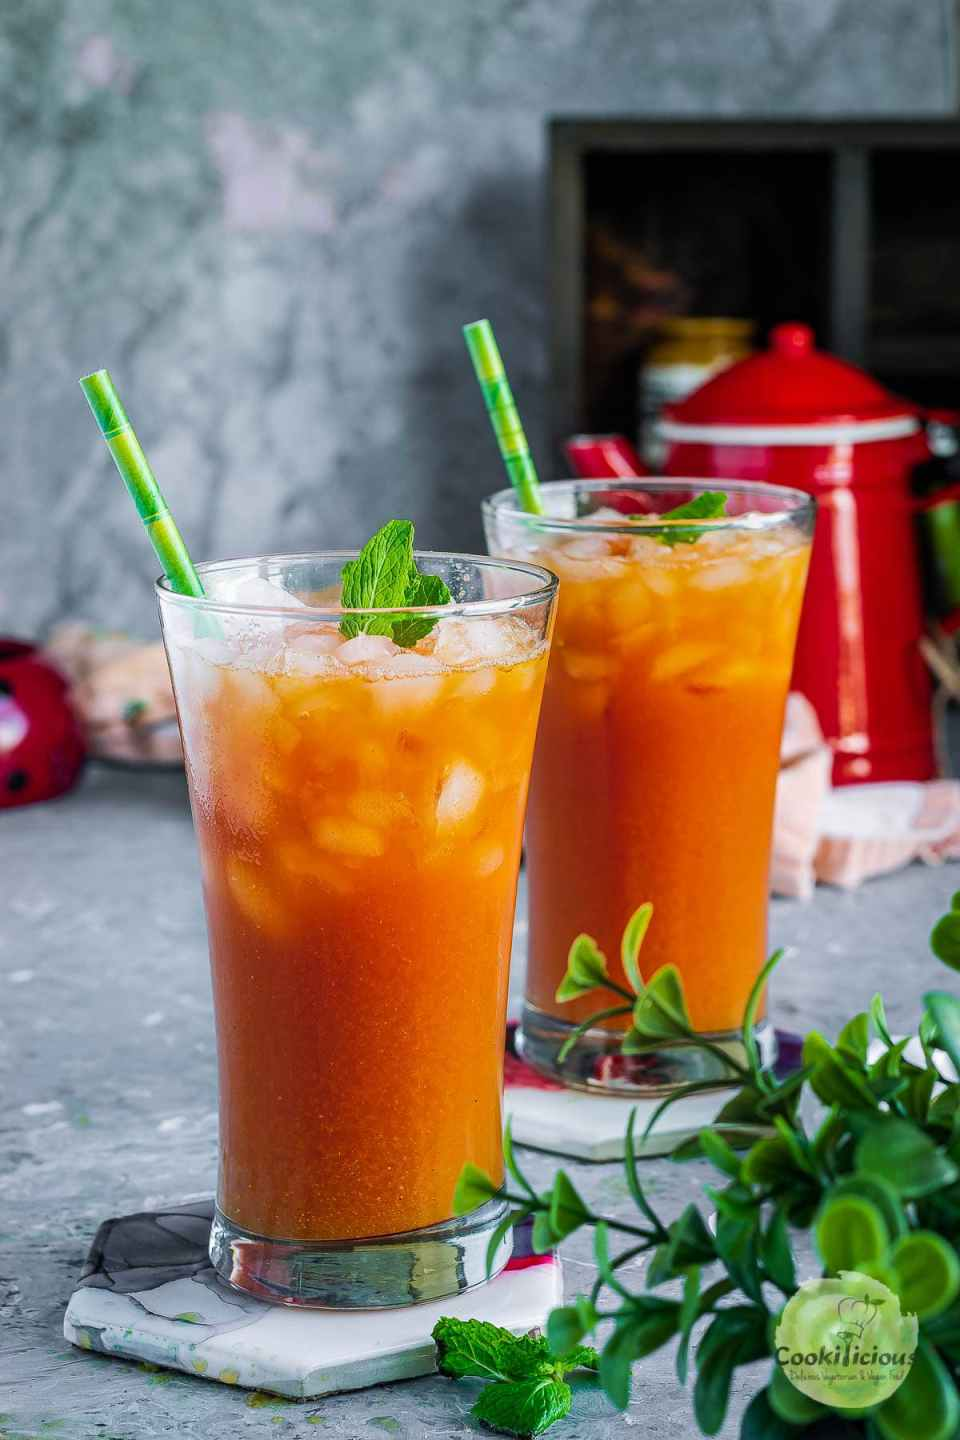 2 glasses filled with watermelon juice recipe - Sugar Free Drink with straws in it